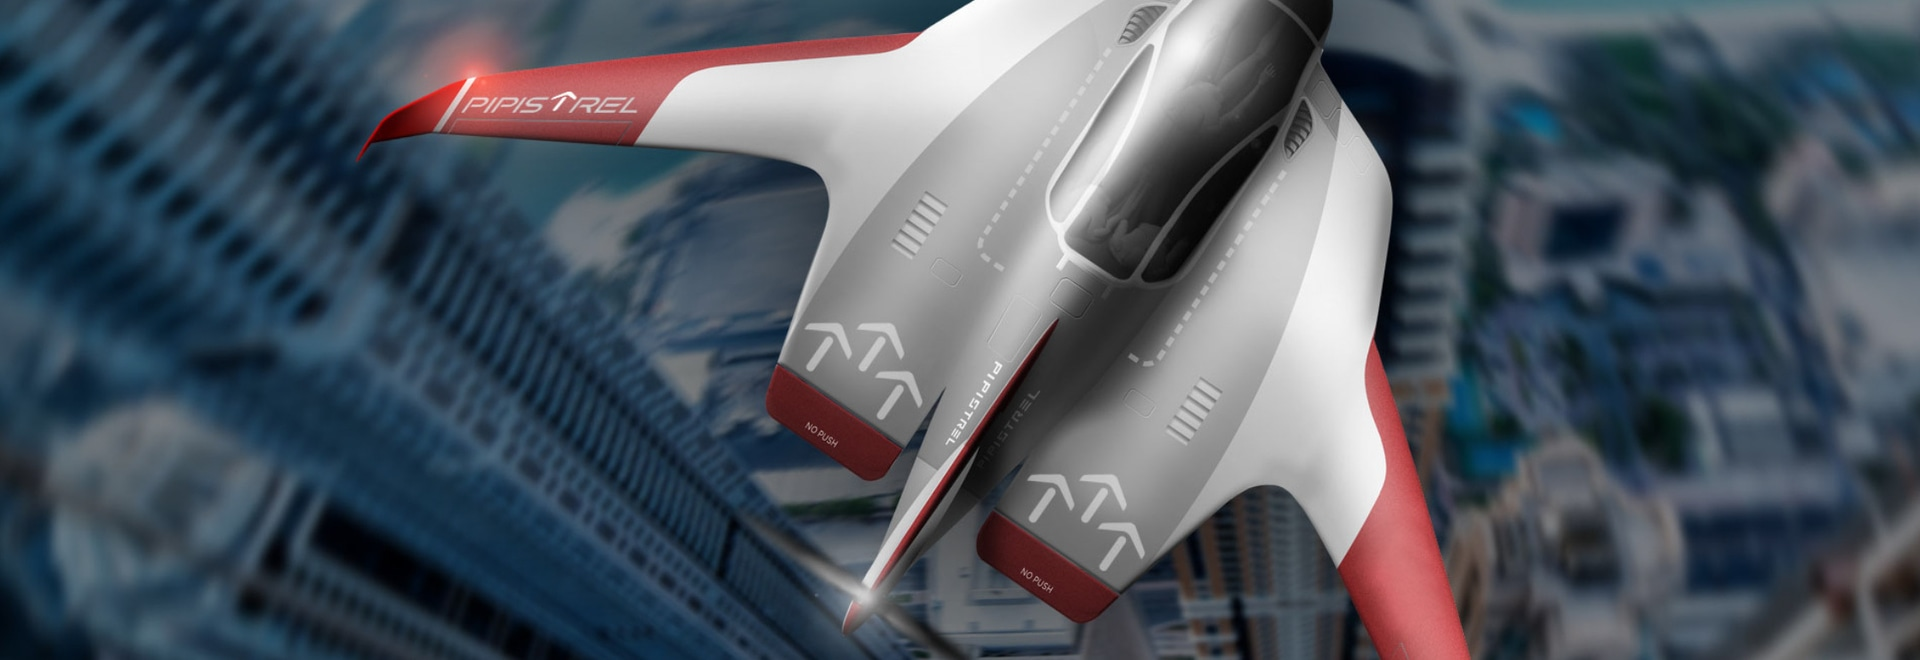 The joint venture brings decades of Honeywell technology experience to new urban aircraft.